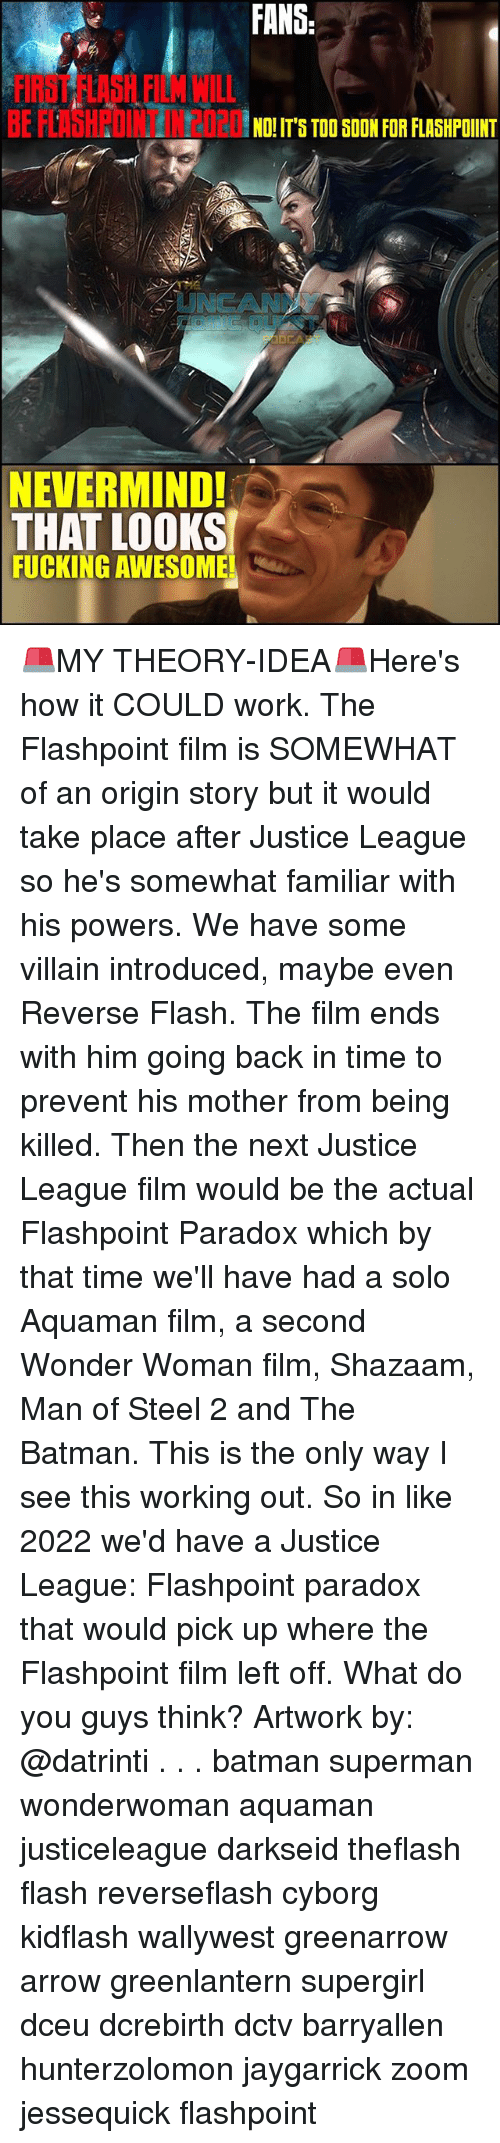 Batman, Fucking, and Memes: FANS  FIRST FLASH FILM WILL  BE FLAHPOINT N2020S T00  NO! IT'S TOO SOON FOR FLASHPOINT  UNCANN  NEVERMIND!  THAT LOOKS  FUCKING AWESOME 🚨MY THEORY-IDEA🚨Here's how it COULD work. The Flashpoint film is SOMEWHAT of an origin story but it would take place after Justice League so he's somewhat familiar with his powers. We have some villain introduced, maybe even Reverse Flash. The film ends with him going back in time to prevent his mother from being killed. Then the next Justice League film would be the actual Flashpoint Paradox which by that time we'll have had a solo Aquaman film, a second Wonder Woman film, Shazaam, Man of Steel 2 and The Batman. This is the only way I see this working out. So in like 2022 we'd have a Justice League: Flashpoint paradox that would pick up where the Flashpoint film left off. What do you guys think? Artwork by: @datrinti . . . batman superman wonderwoman aquaman justiceleague darkseid theflash flash reverseflash cyborg kidflash wallywest greenarrow arrow greenlantern supergirl dceu dcrebirth dctv barryallen hunterzolomon jaygarrick zoom jessequick flashpoint